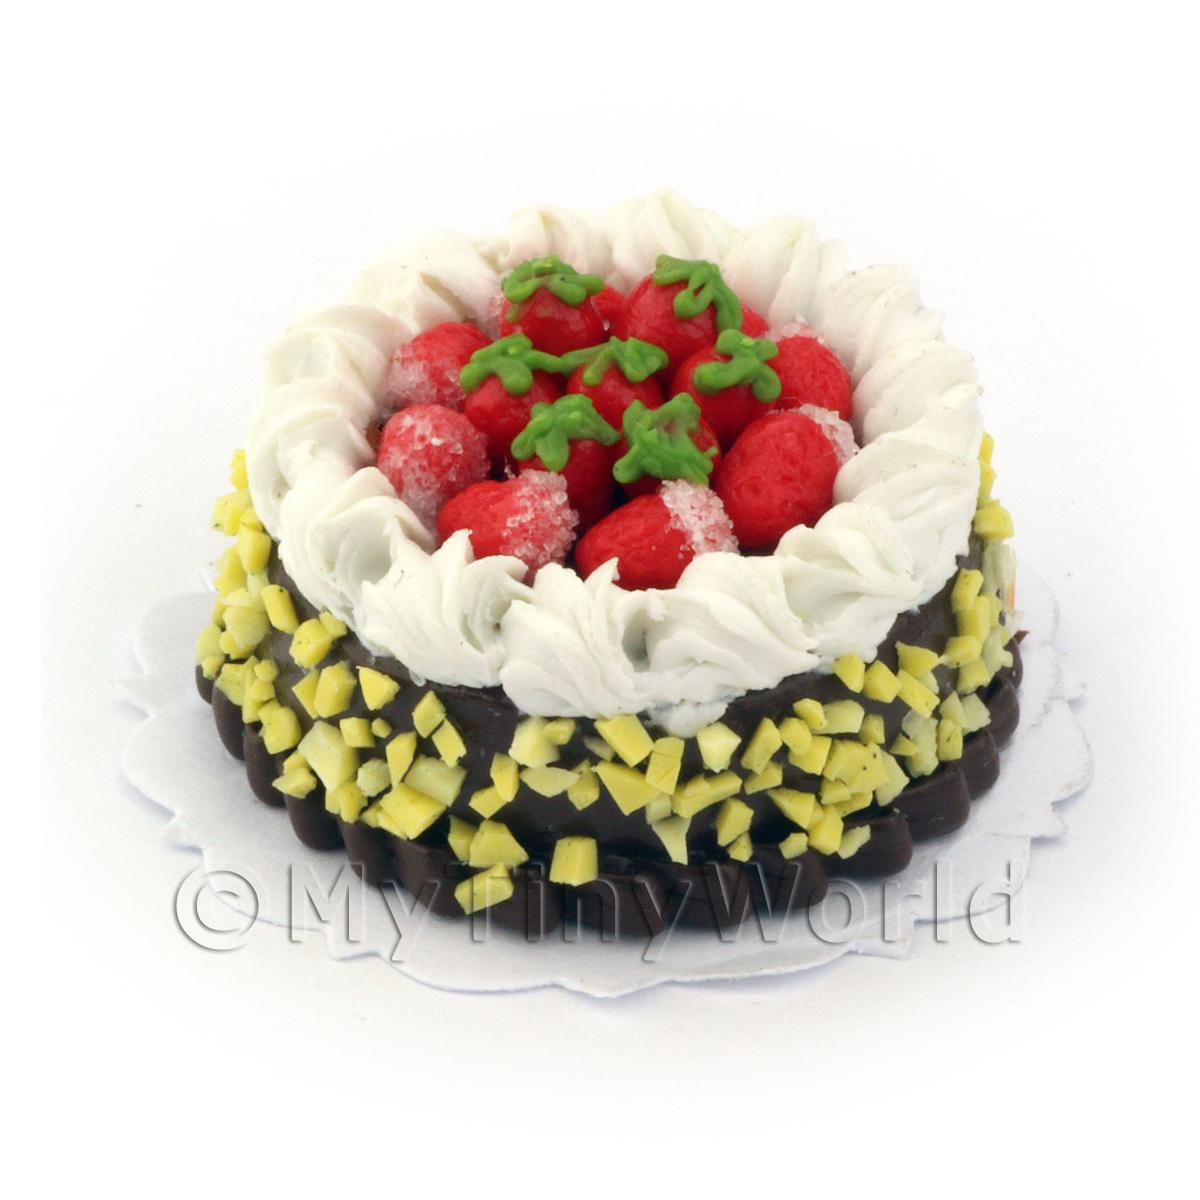 Dolls House Miniature Chocolate Strawberry Gateaux